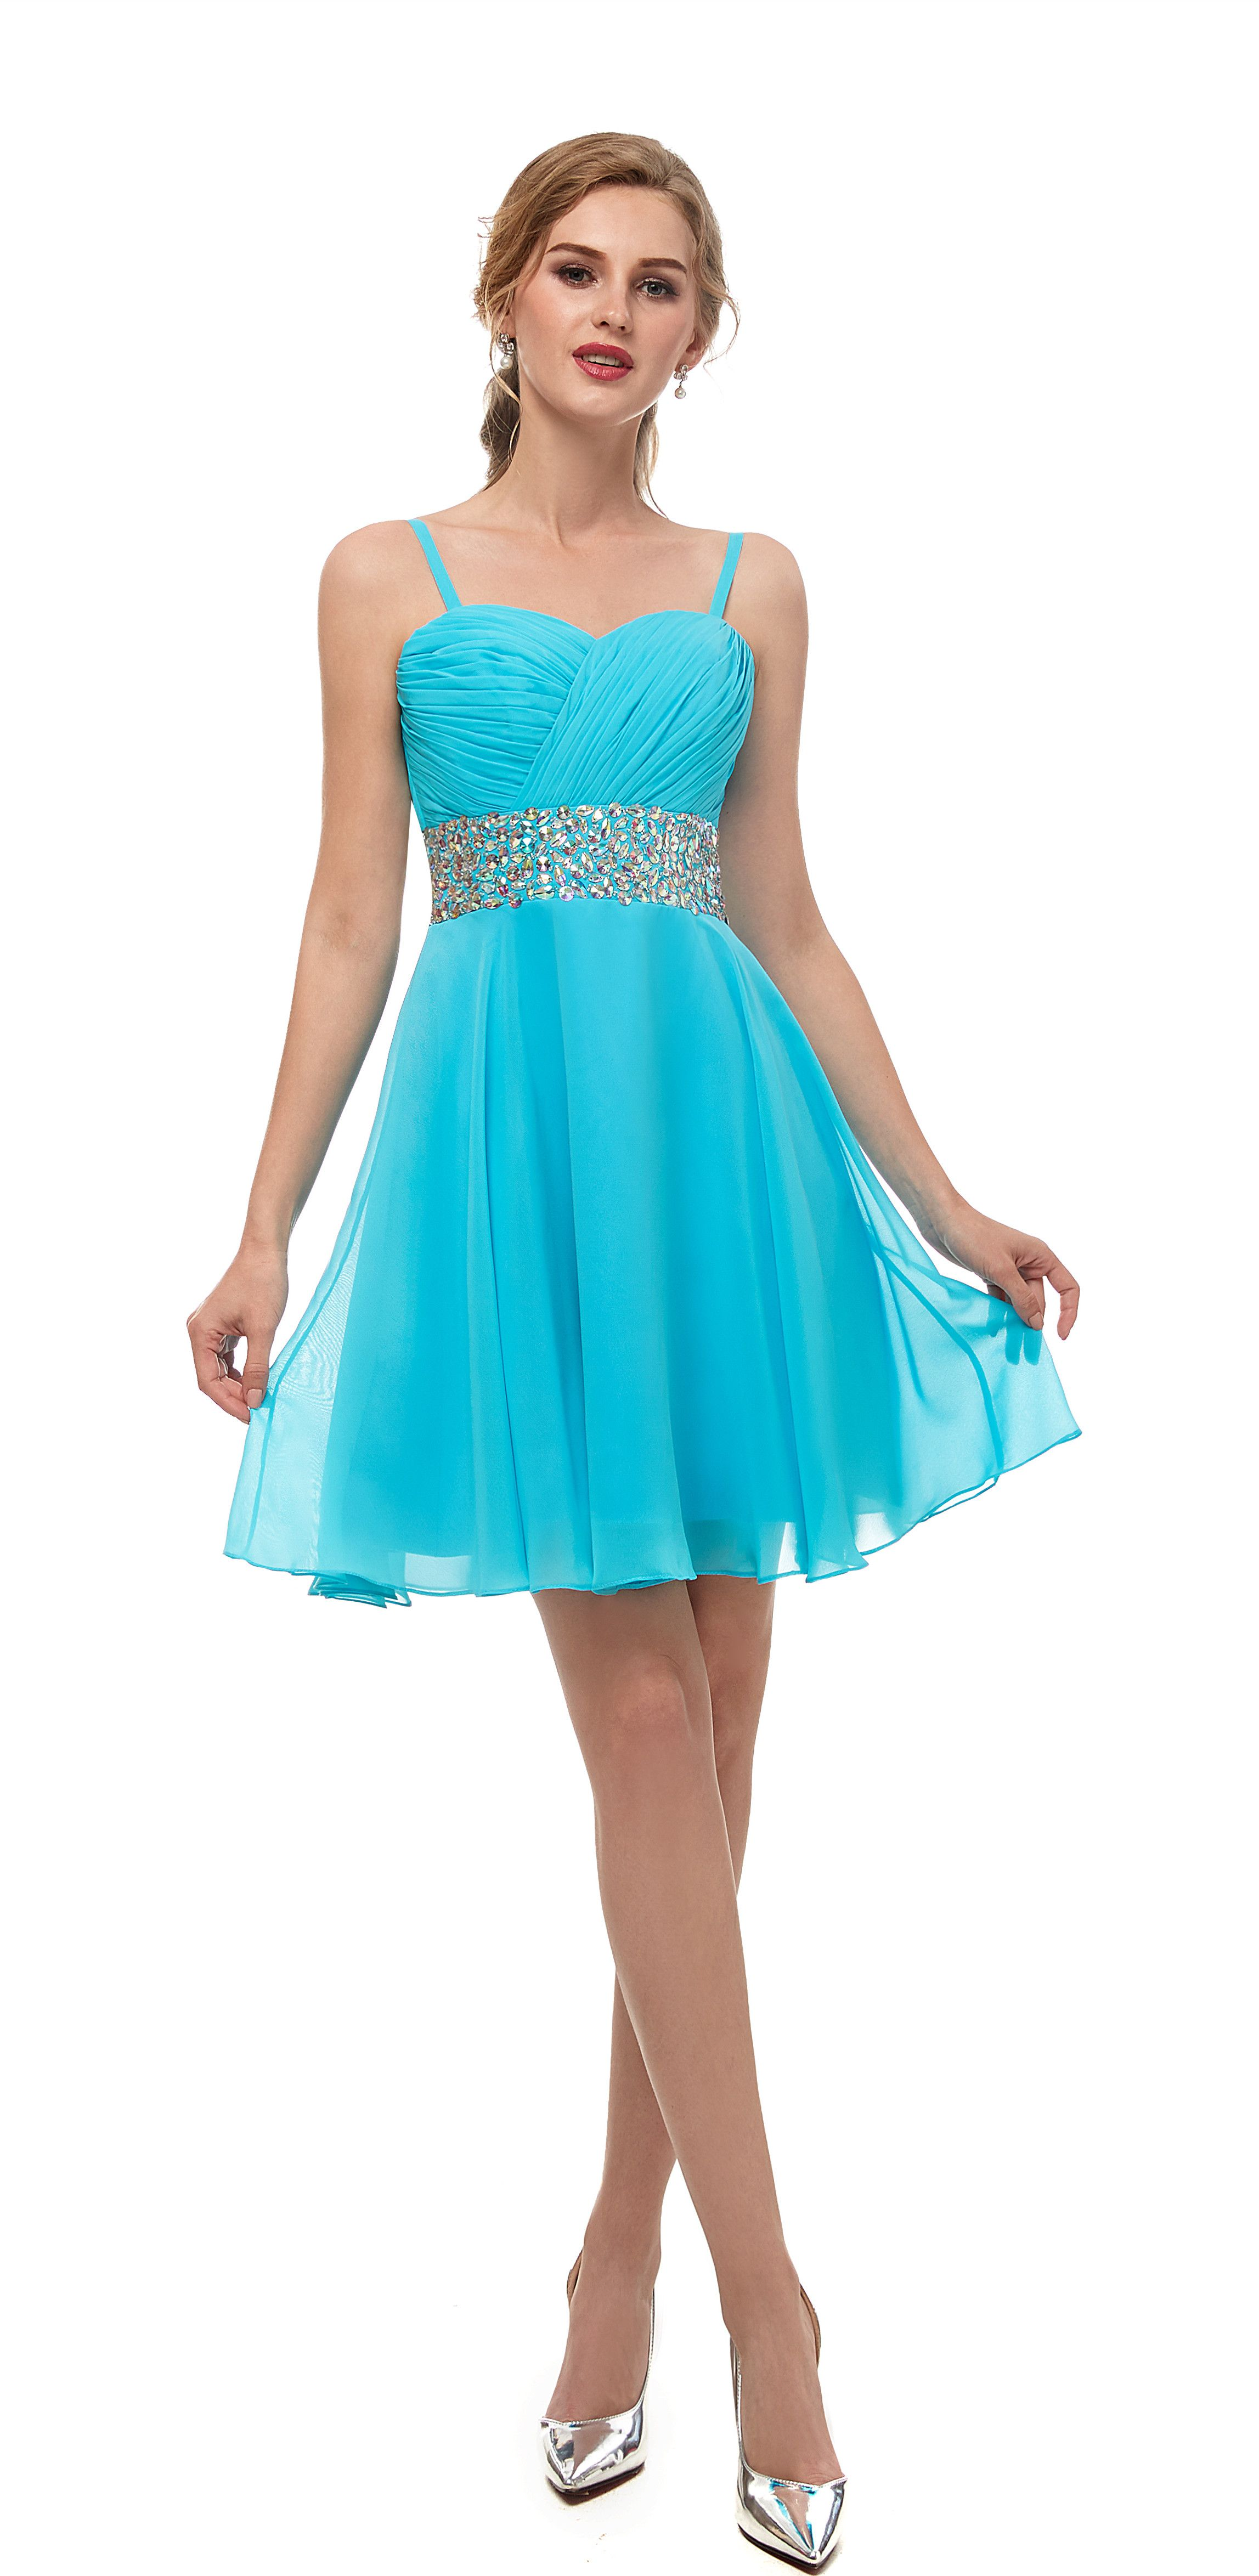 Aline straps aqua chiffon prom dress with rhinestone must have